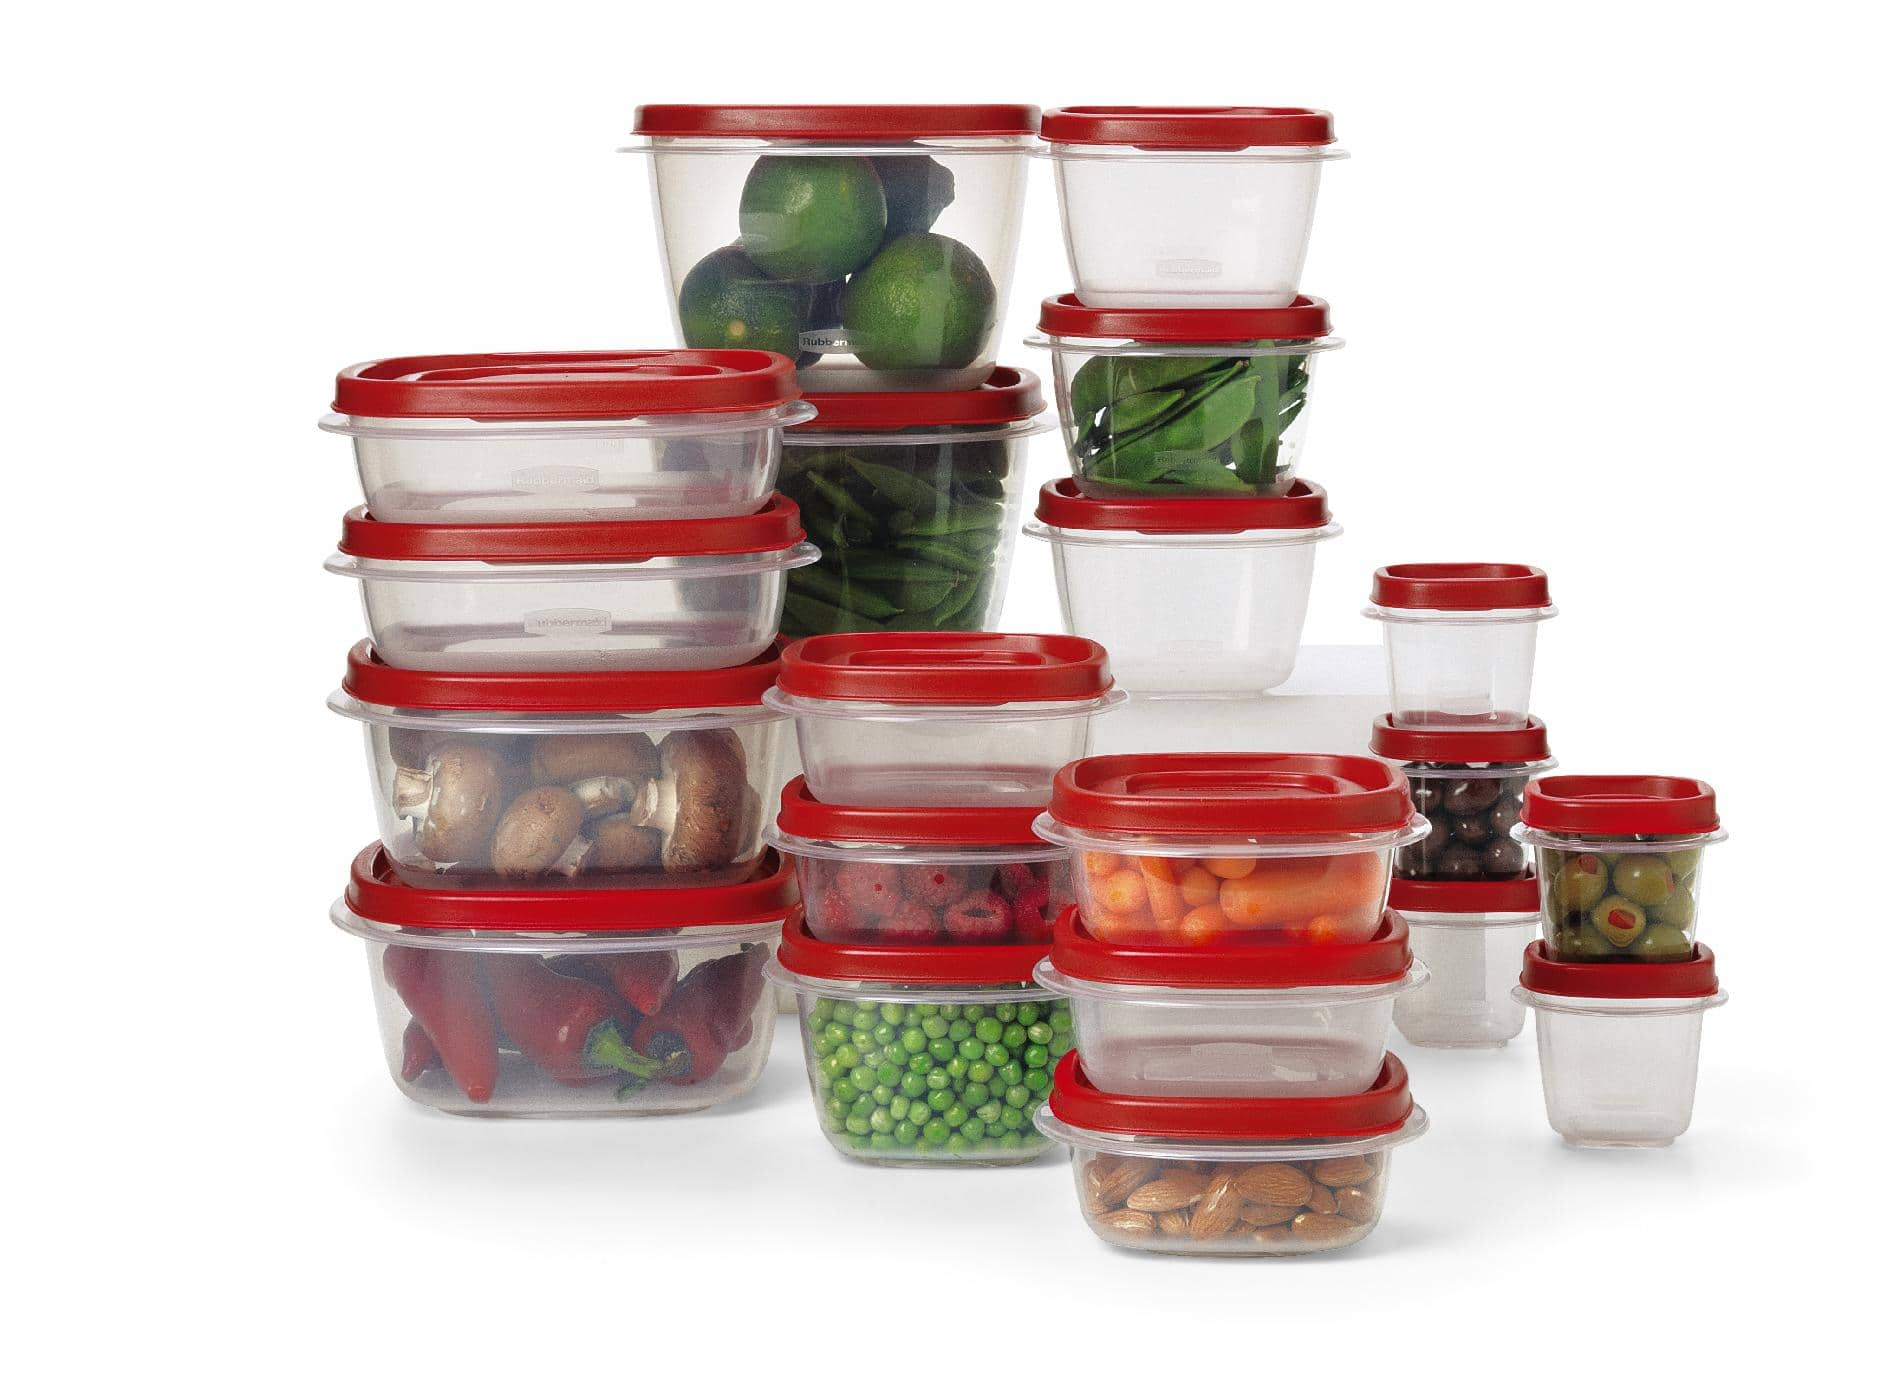 Kmart - Rubbermaid 40-Piece Food Storage Set - $7.50 - Online only price ($2.50 lesser than Doorbuster price)